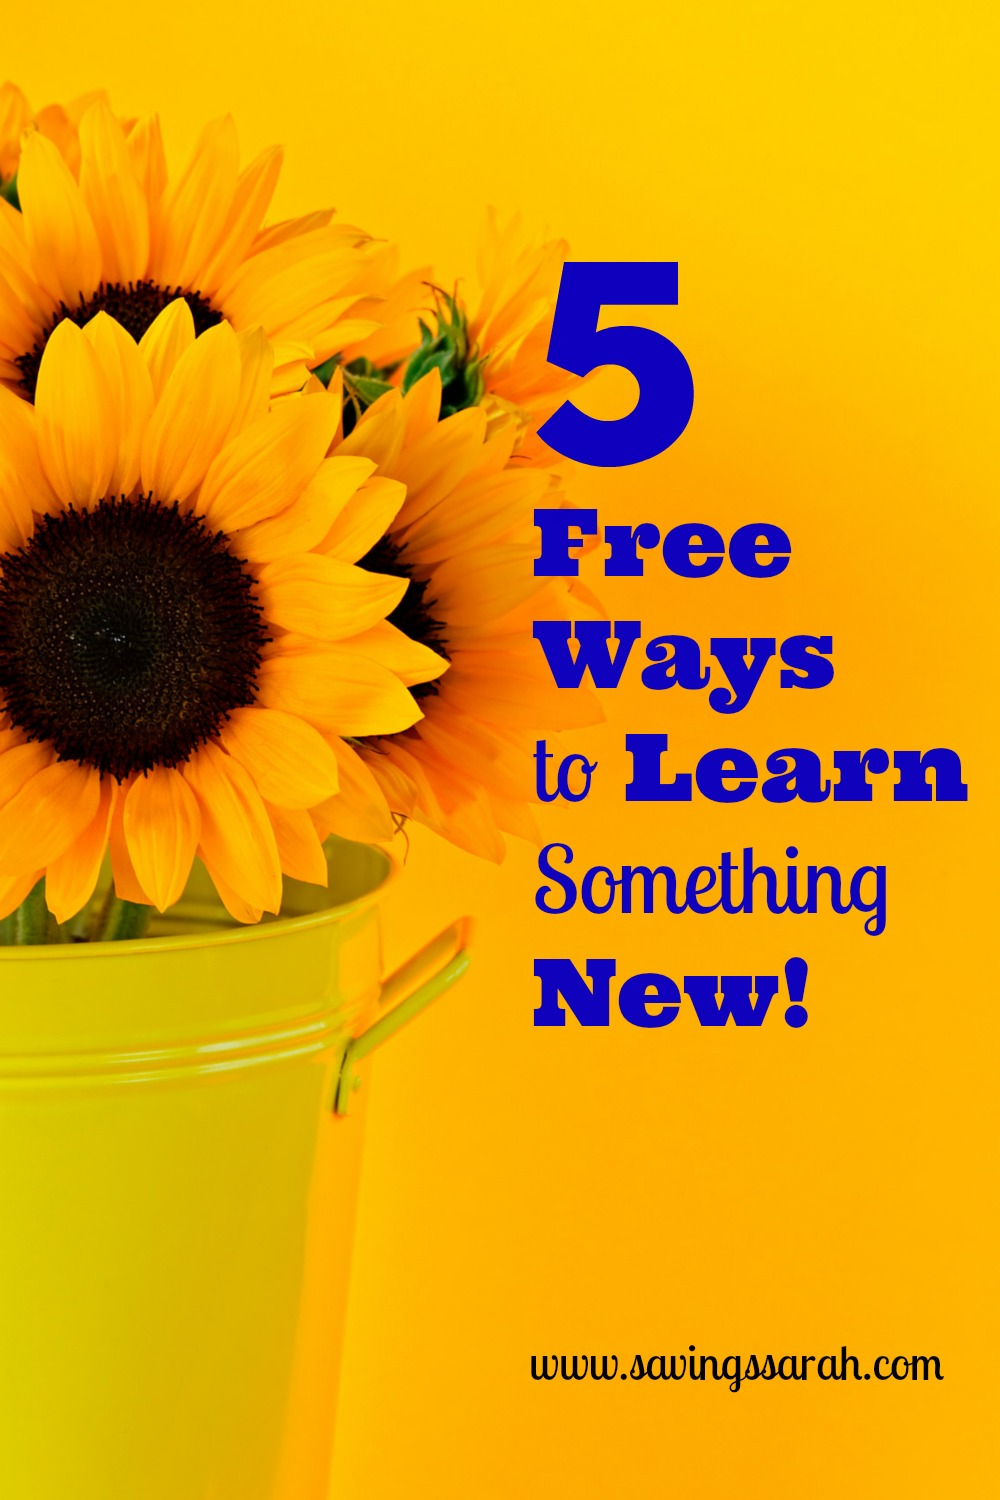 5 Free Ways to Learning Something New This Year!